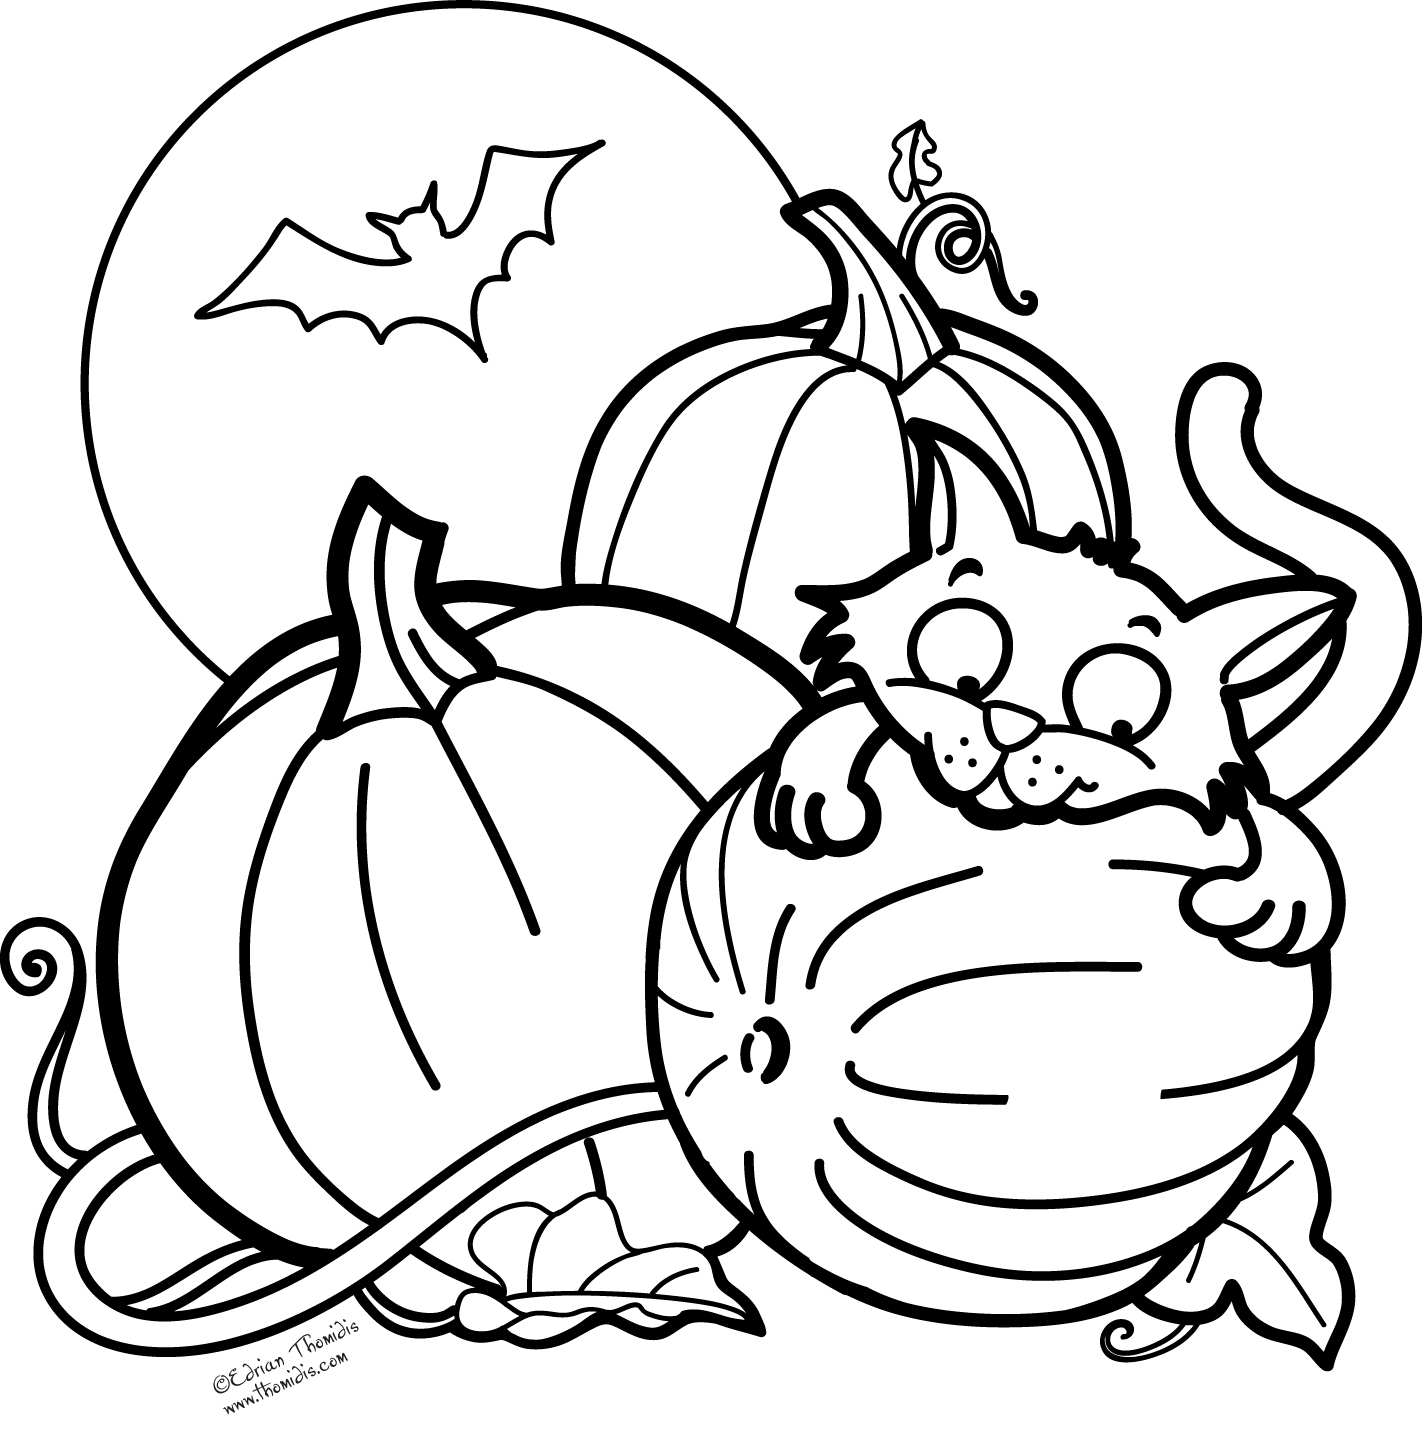 halloween free coloring pages | A picture paints a thousand words: Pumpkin, Cat and a Bat ...